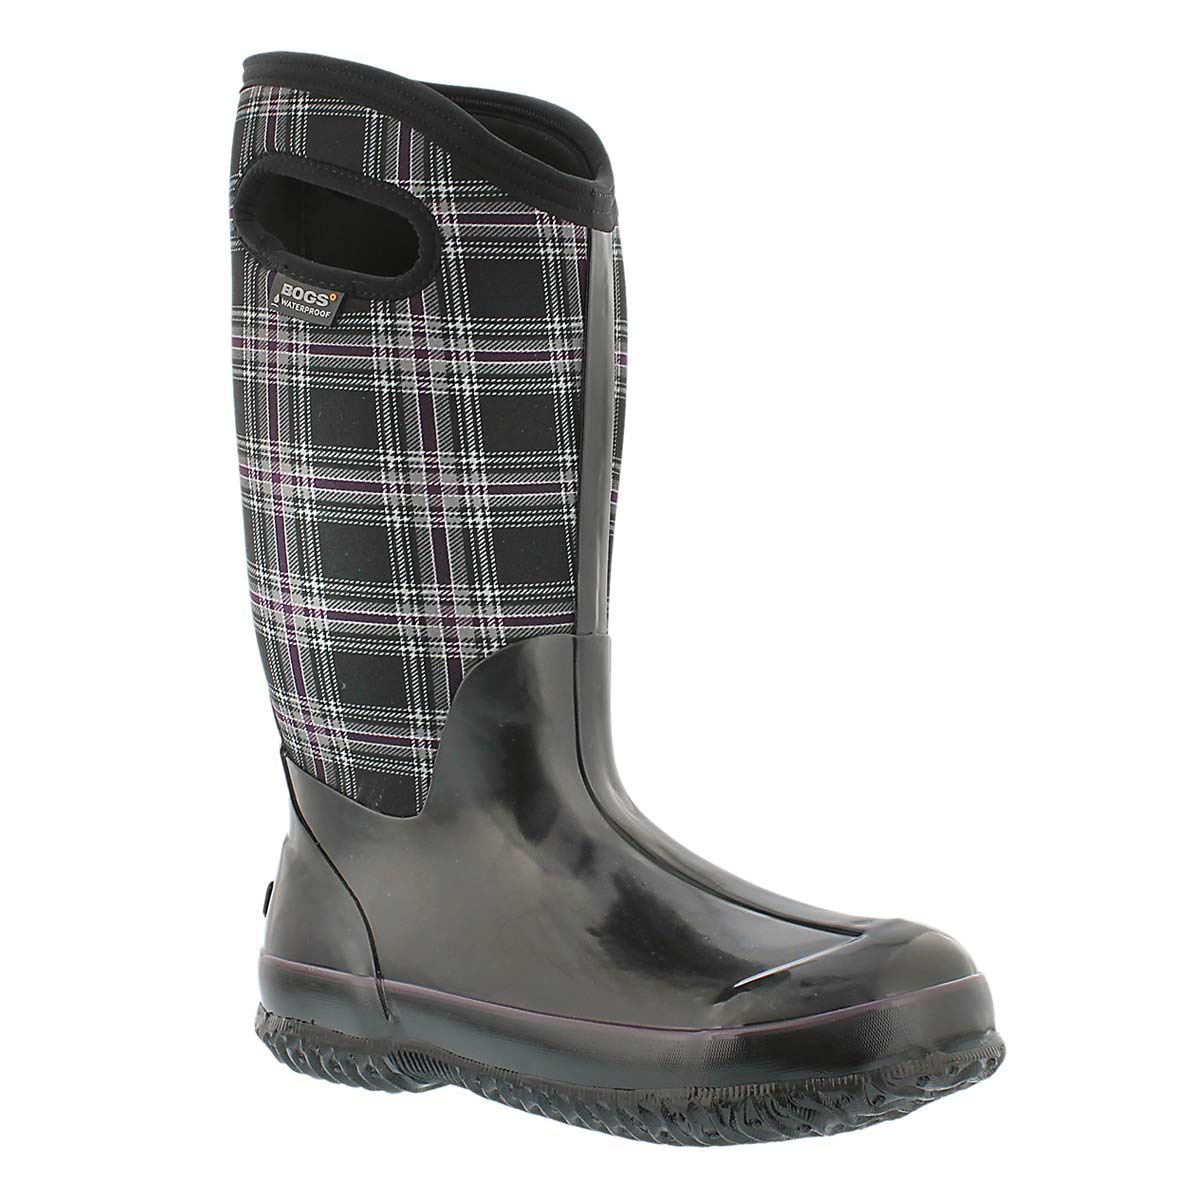 Lds Winter Plaid Tall blk wtpf boot WIDE